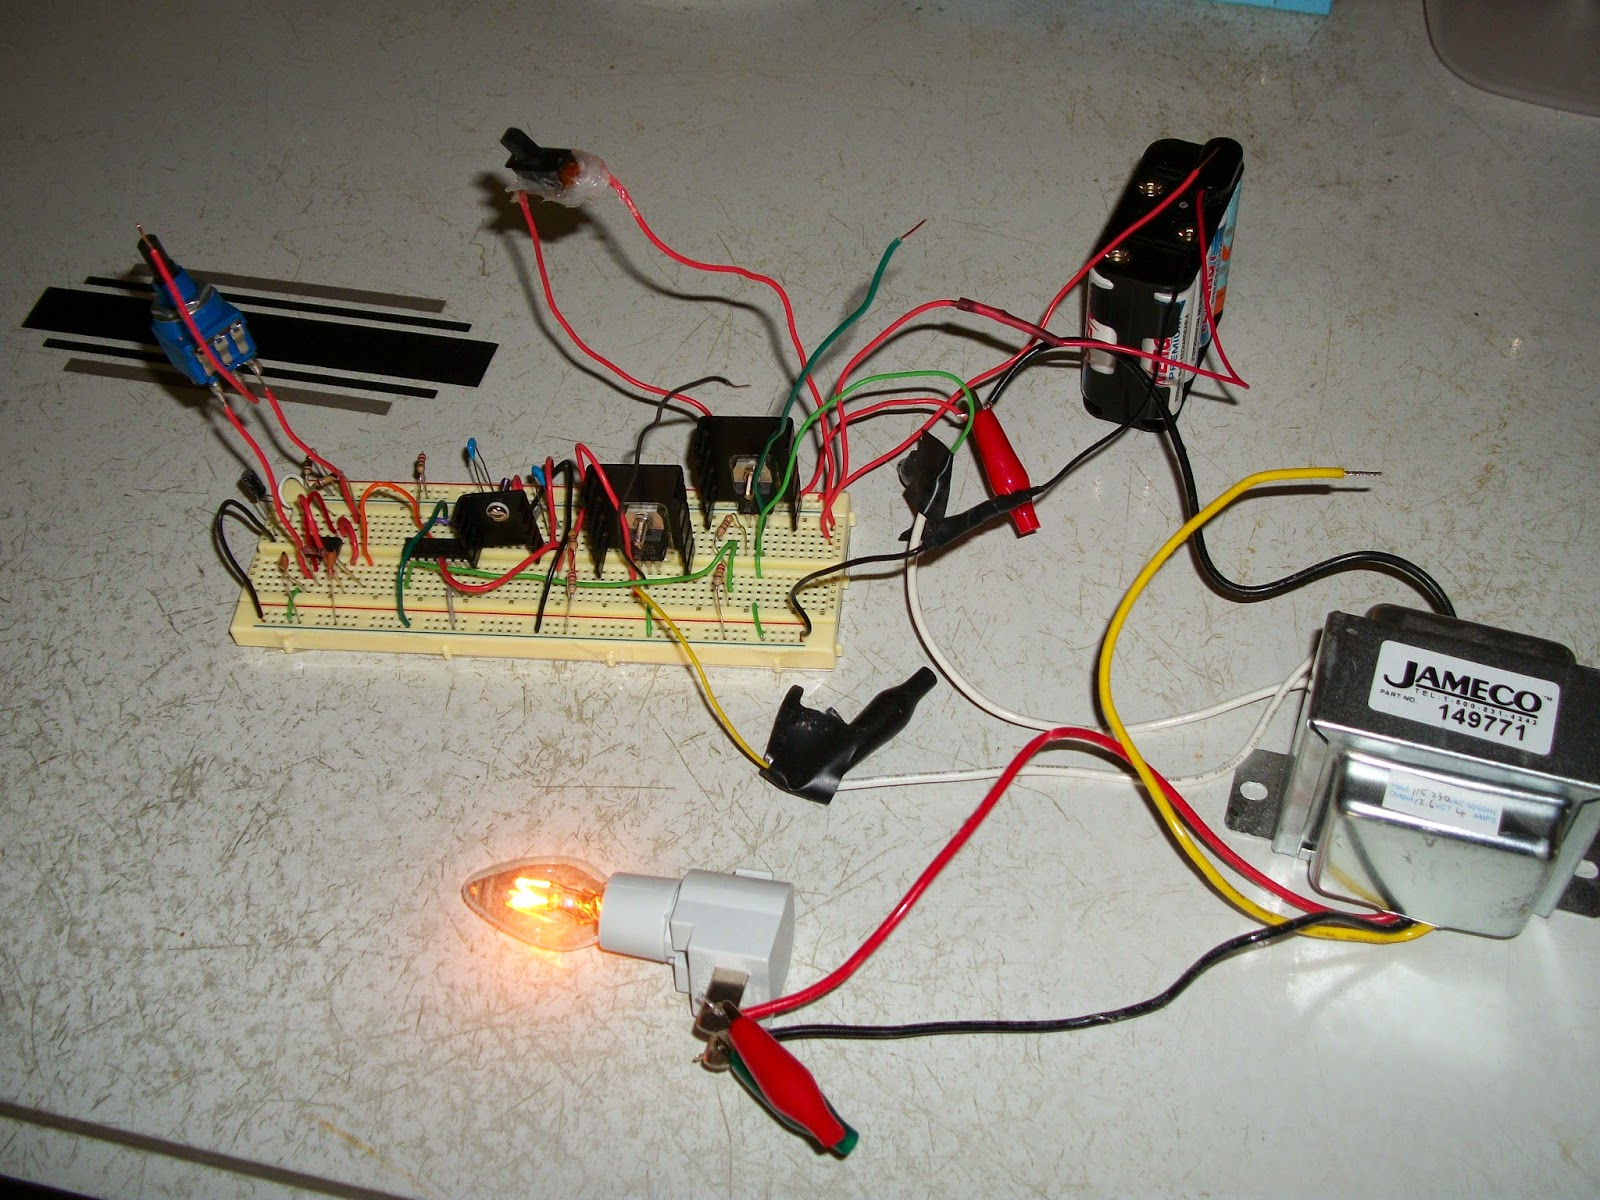 The Krell Lab November 2014 How To Make A Simple 200 Watt Modified Sine Wave Inverter Circuit Homemade Power Inverter350 500w On Breadboard